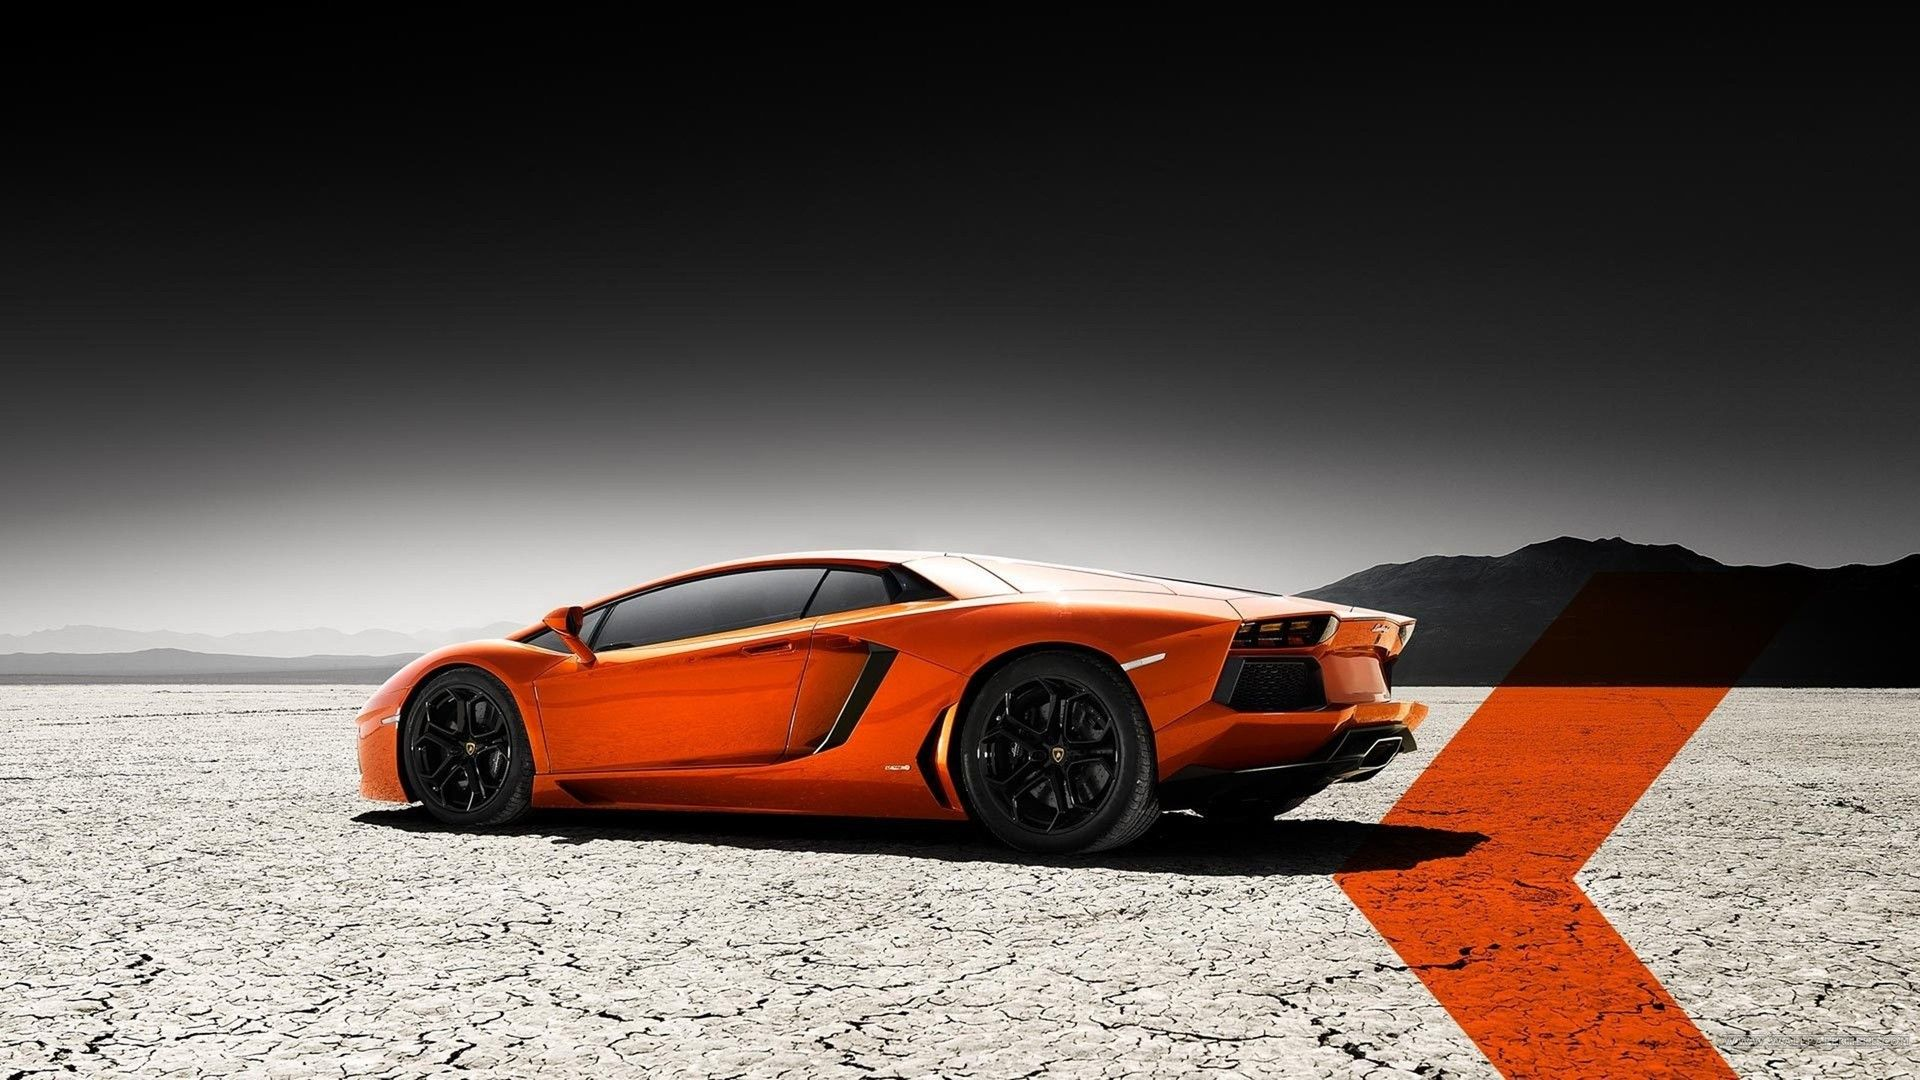 Lamborghini Aventador Wallpapers 1920x1080